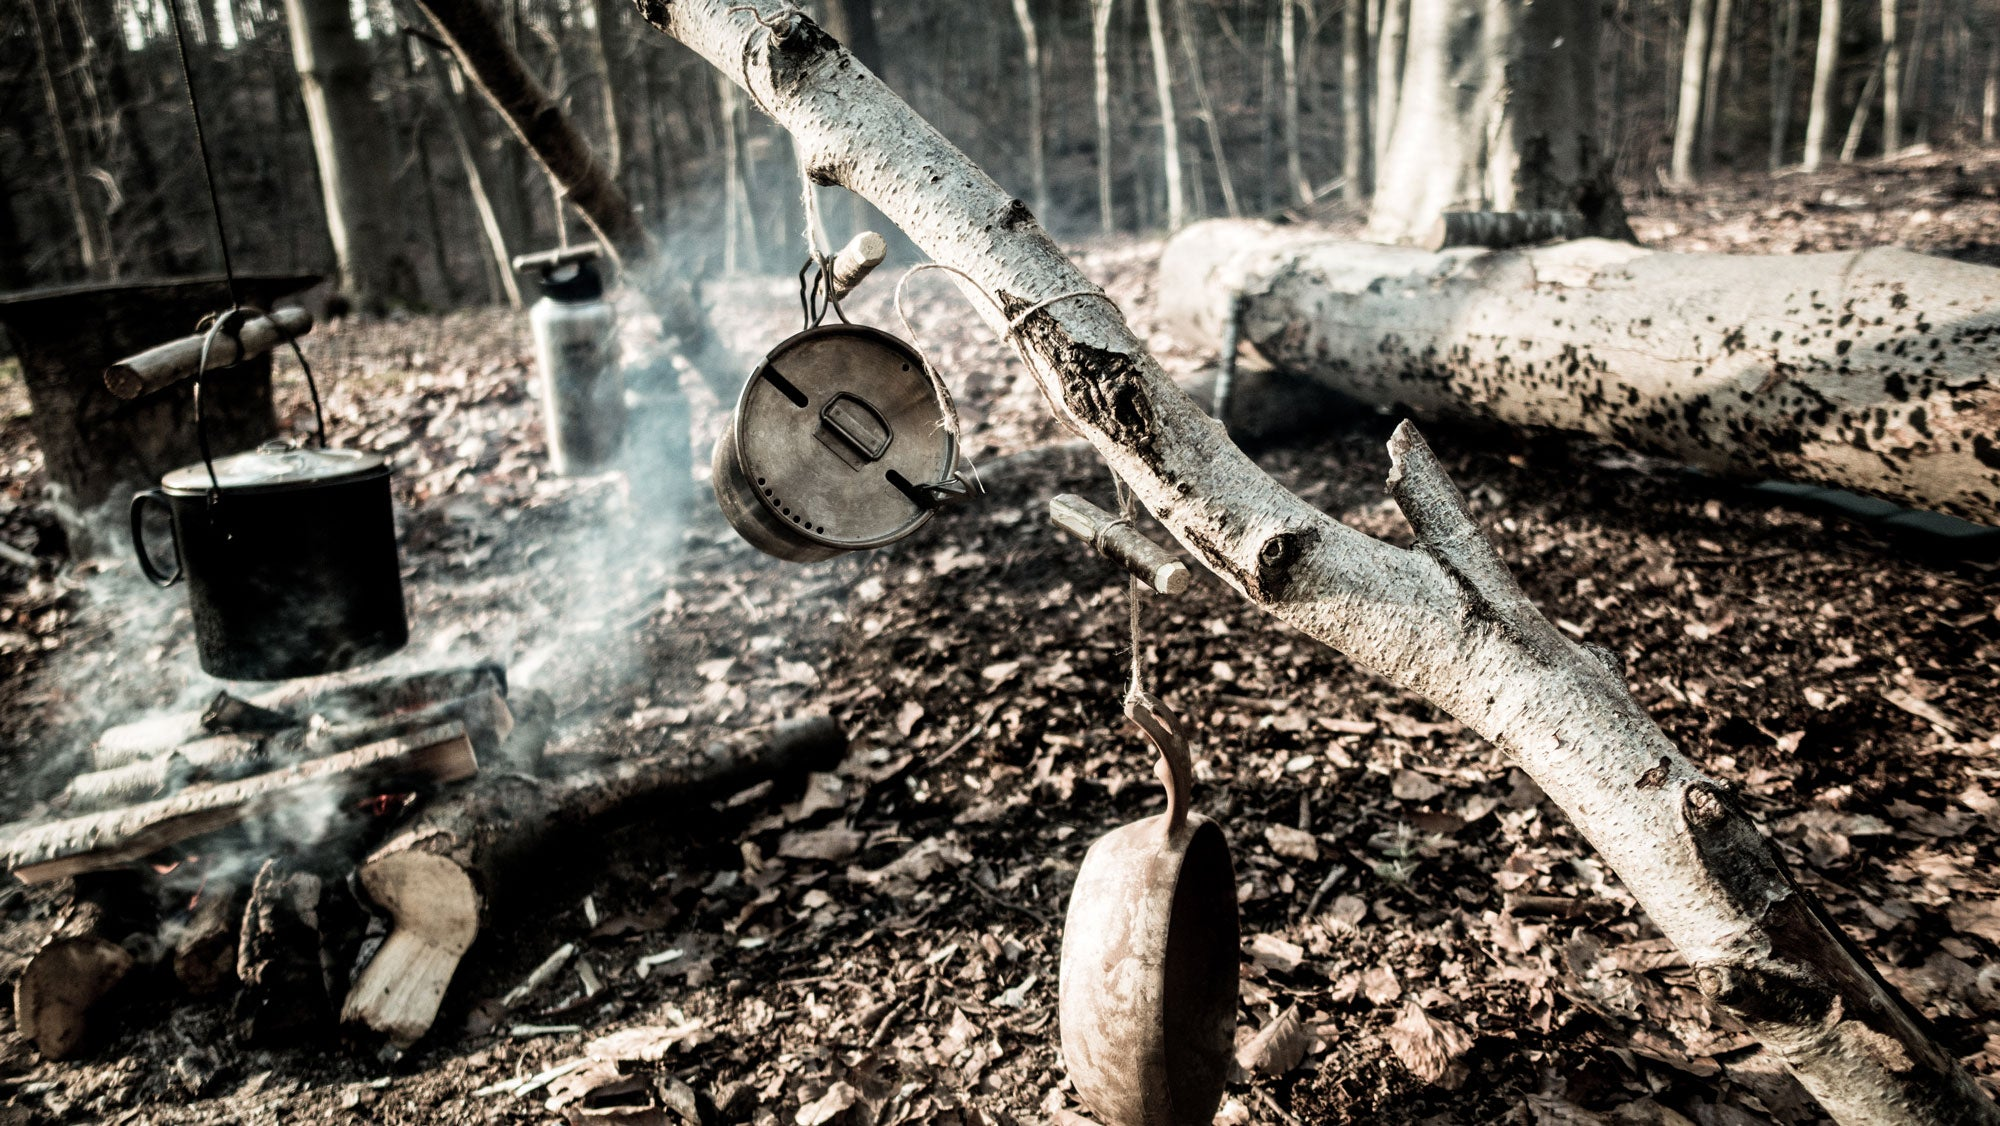 A bushcrafting campsite differs greatly from the site of a typical ultralight hiker.